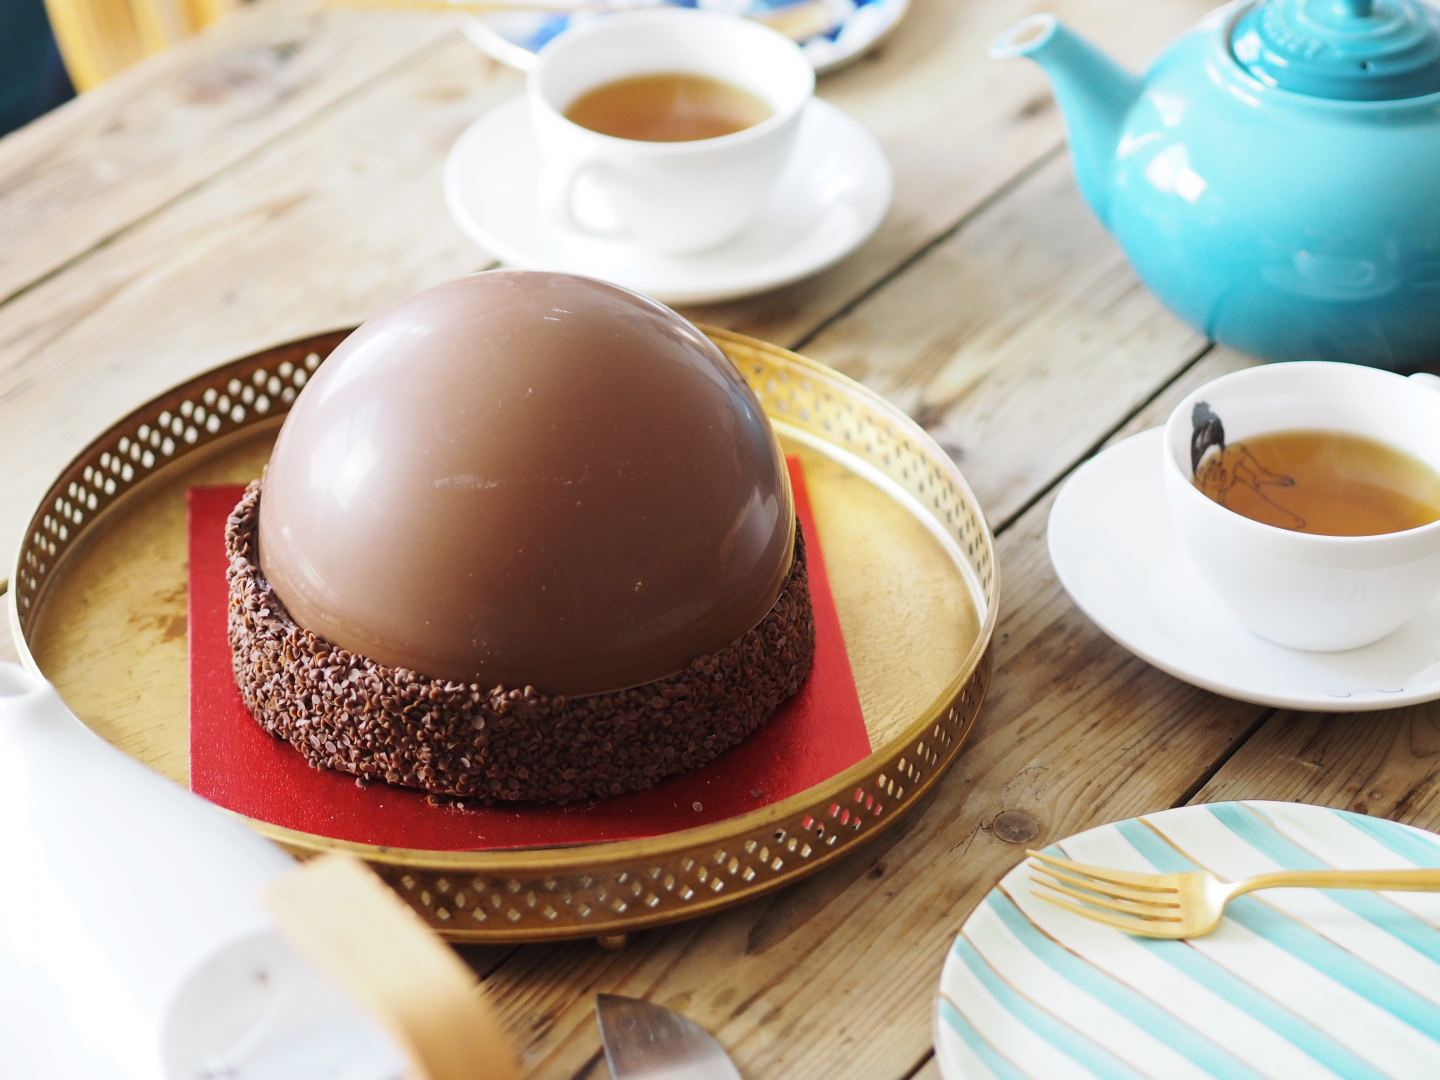 malteaser smash cake why it's important to have more fun cake entertaining